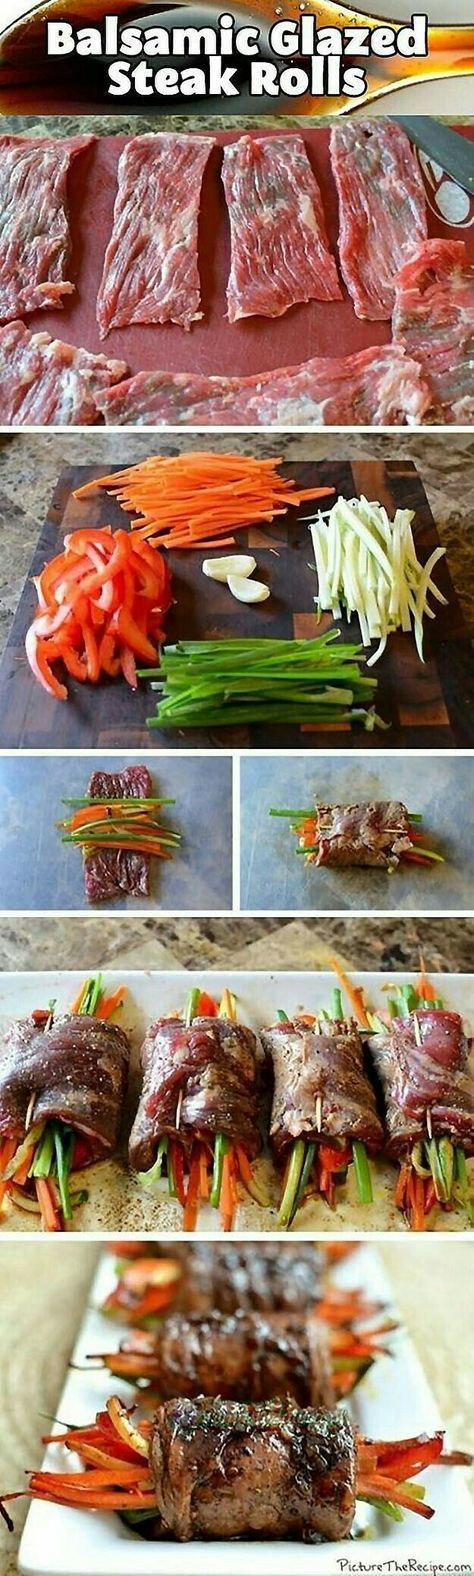 Beef and vegetable roll-ups (add enoki mushrooms)